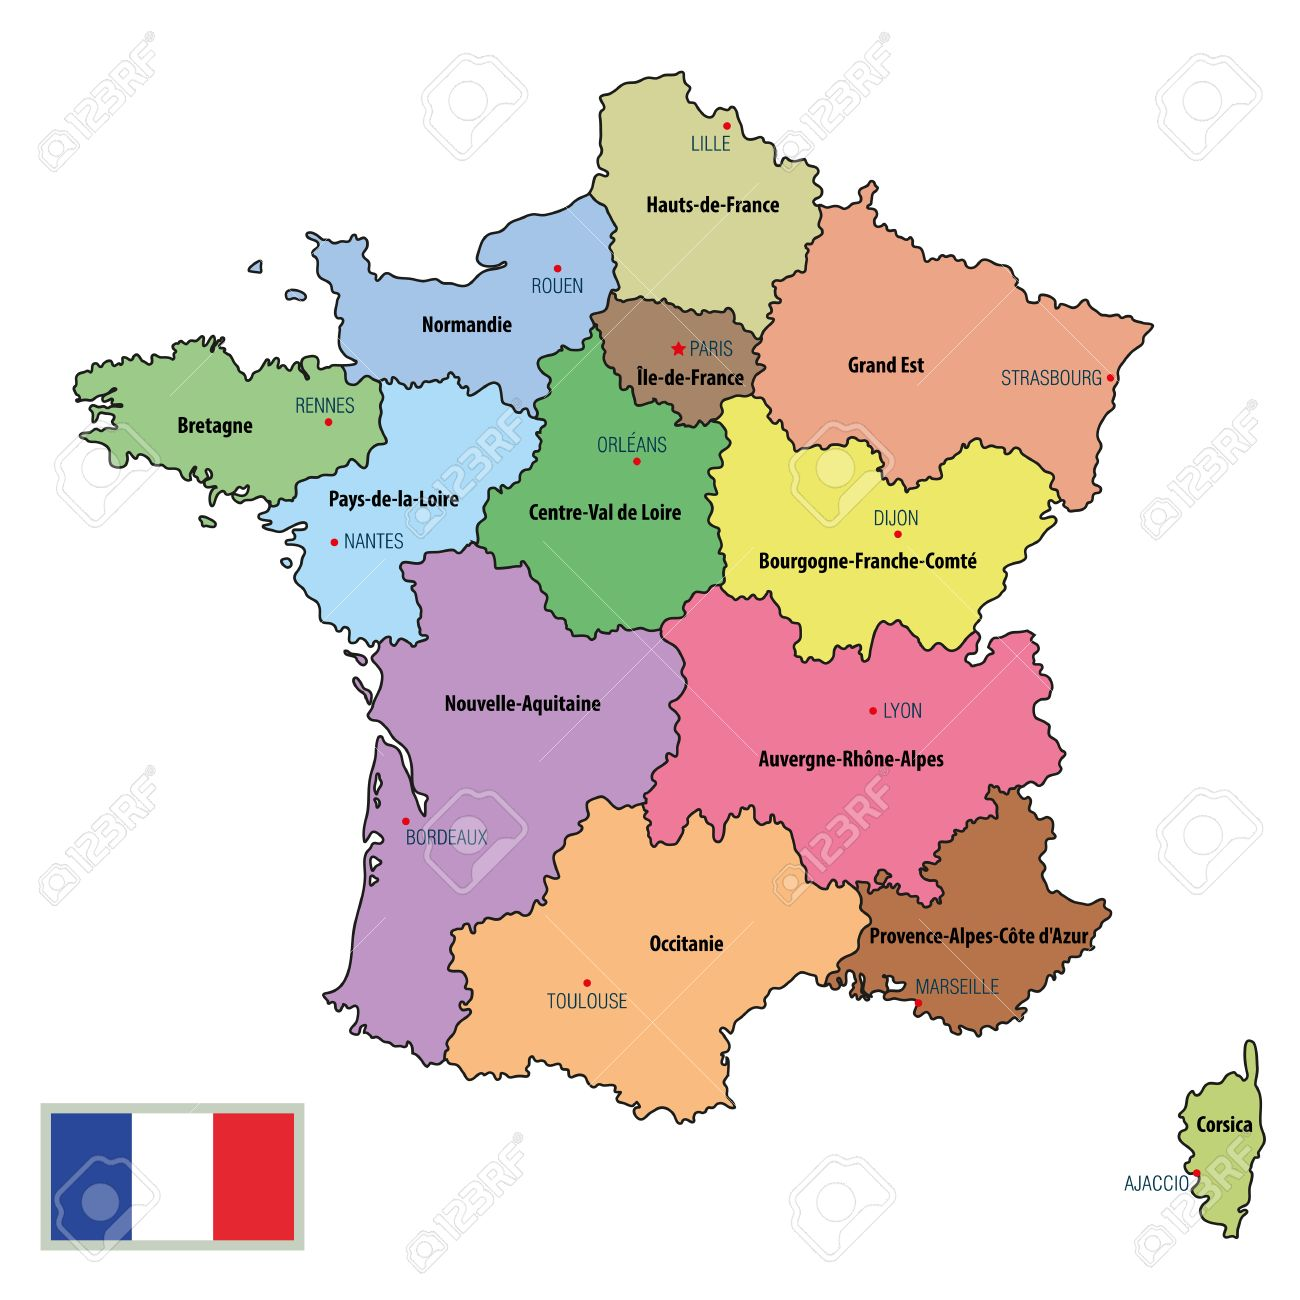 Map Of France Political.Vector Highly Detailed Political Map Of France With Regions And